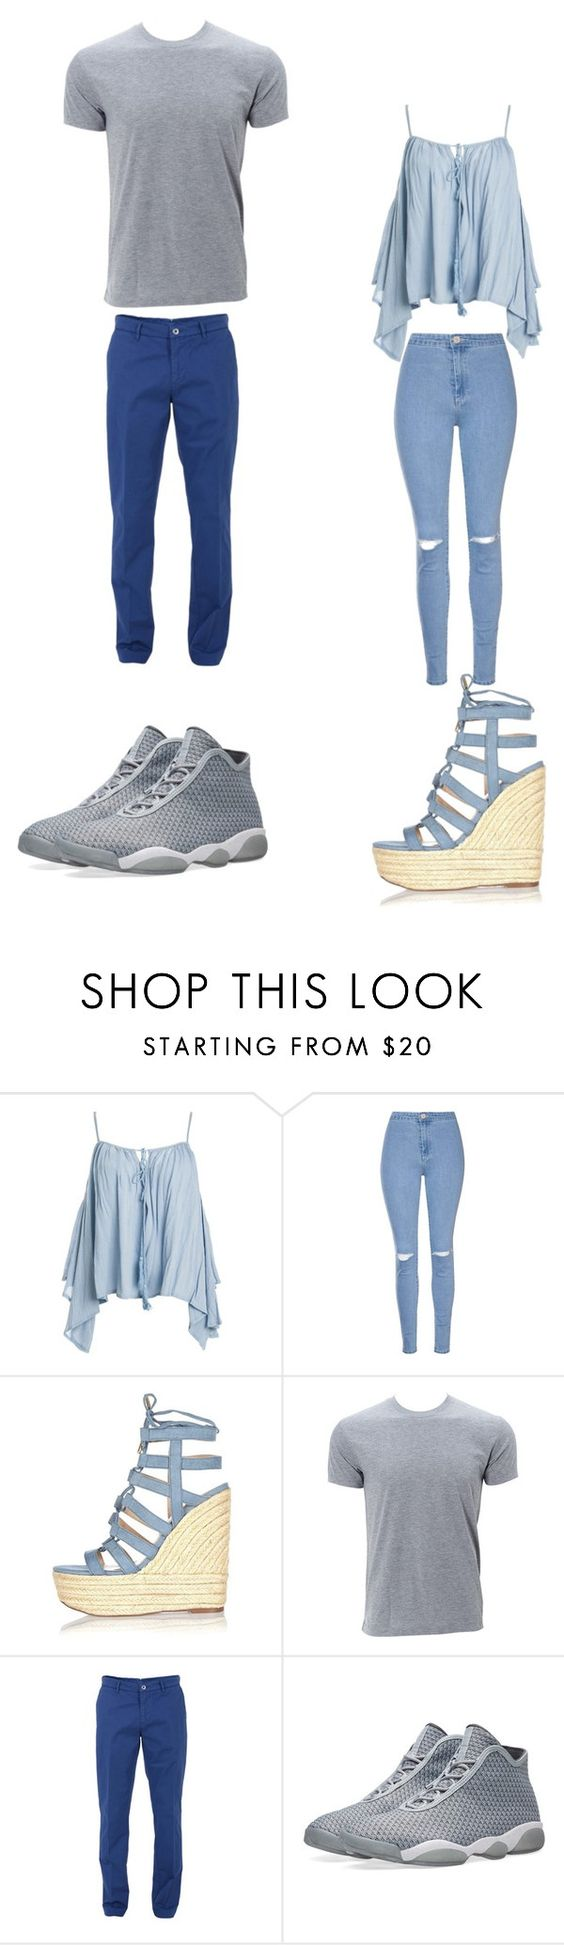 """Untitled #293"" by kassidyrobinson on Polyvore featuring Sans Souci, Glamorous, River Island, Trussardi and NIKE"